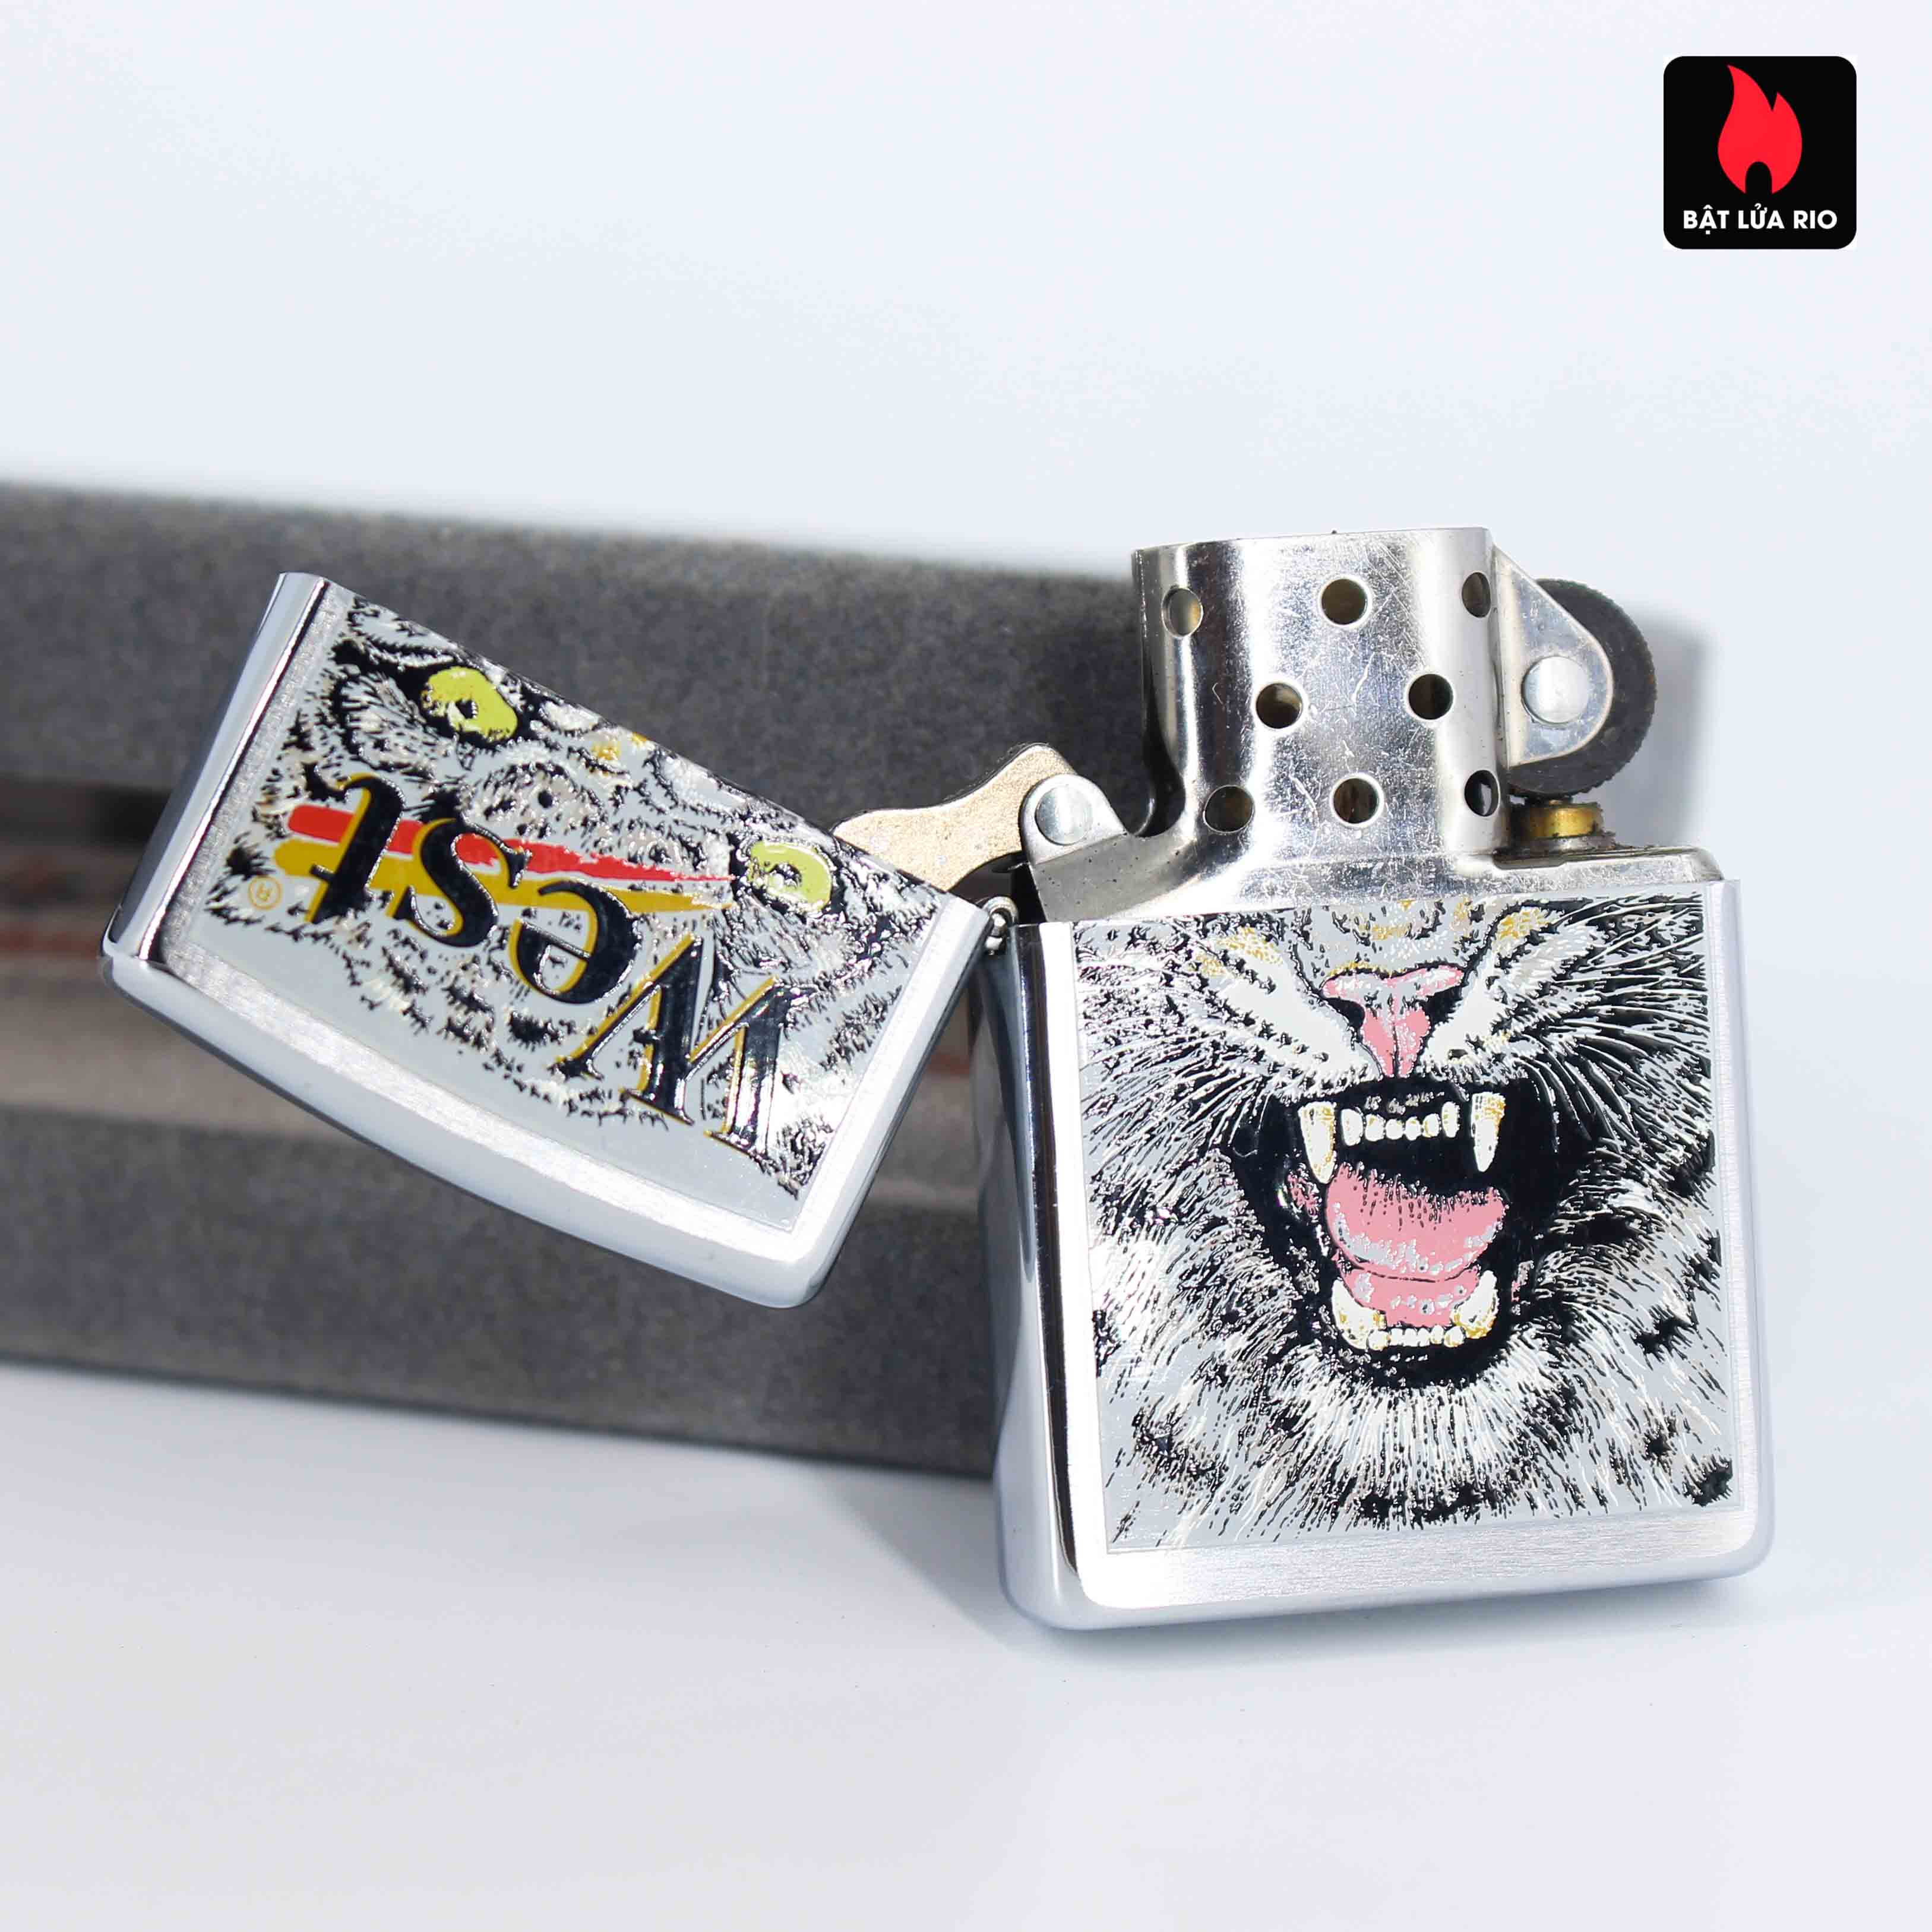 Zippo 2001 - Wild Lighters Edition - Limited Edition /1000 27